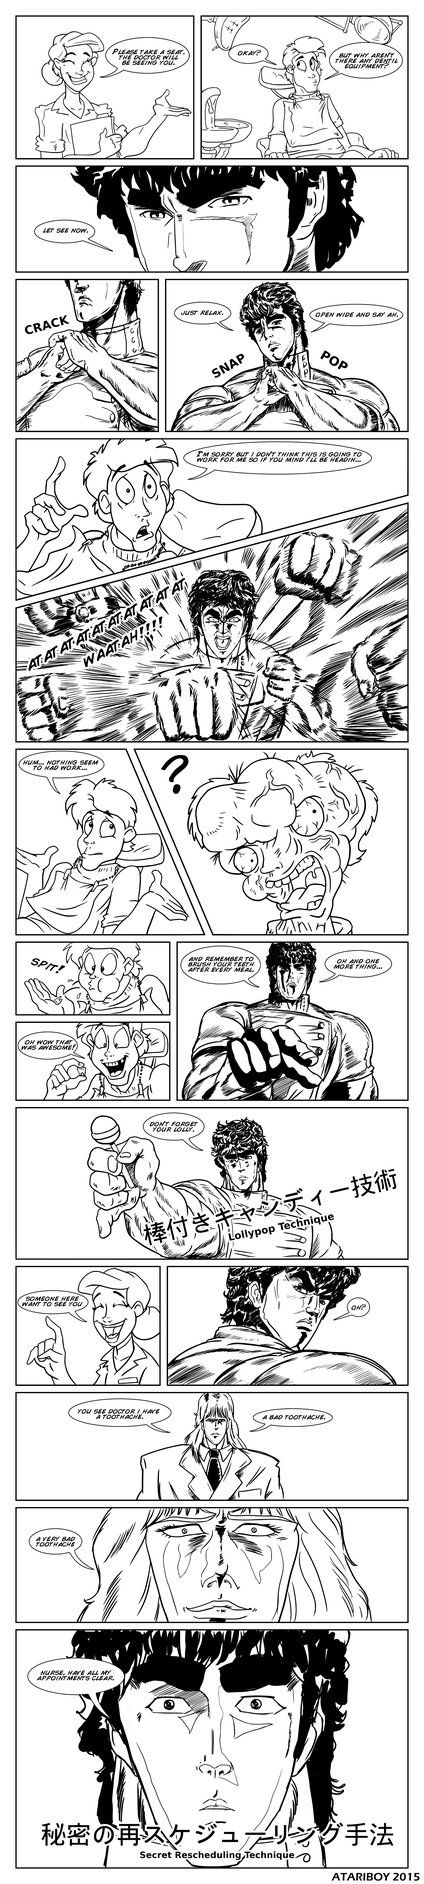 Kenshiro: You're Already Root Canal. Im a HUGE fan of Fist of The North Star from getting alot of there old comics and videos from the 80s and still owns them. But believe it or not I had this comi...